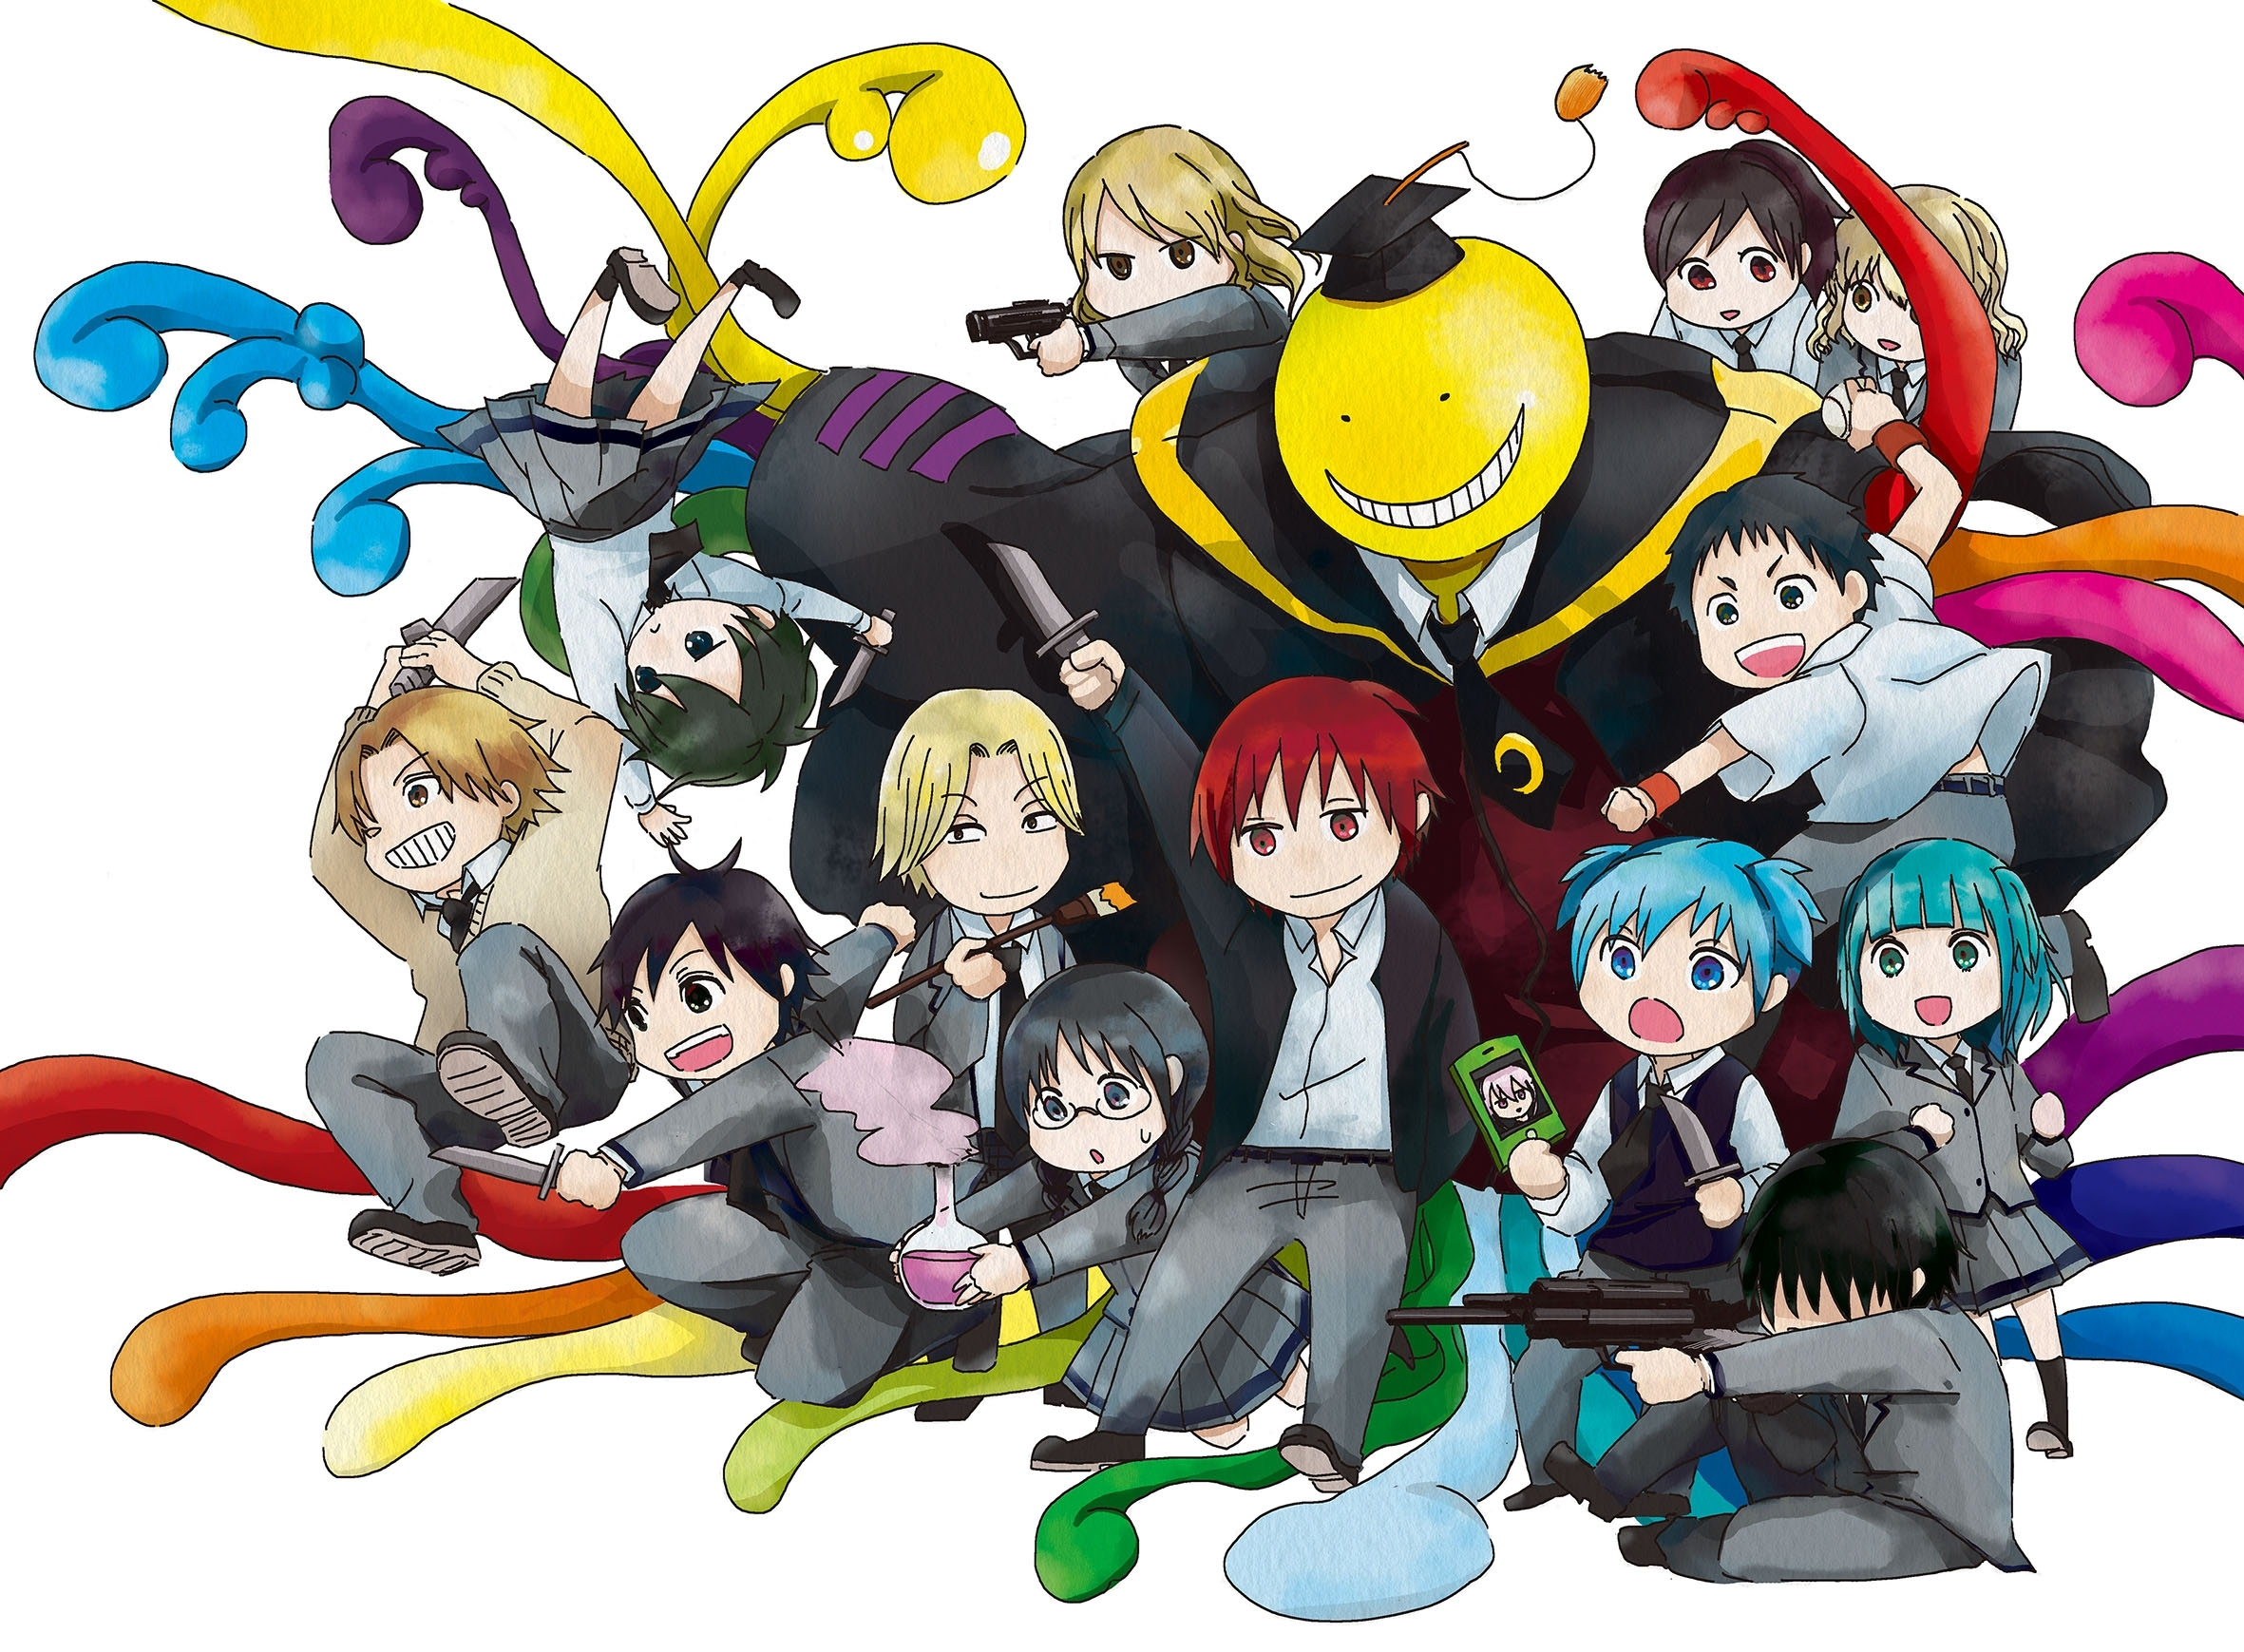 assassination classroom images assassination classroom hd wallpaper